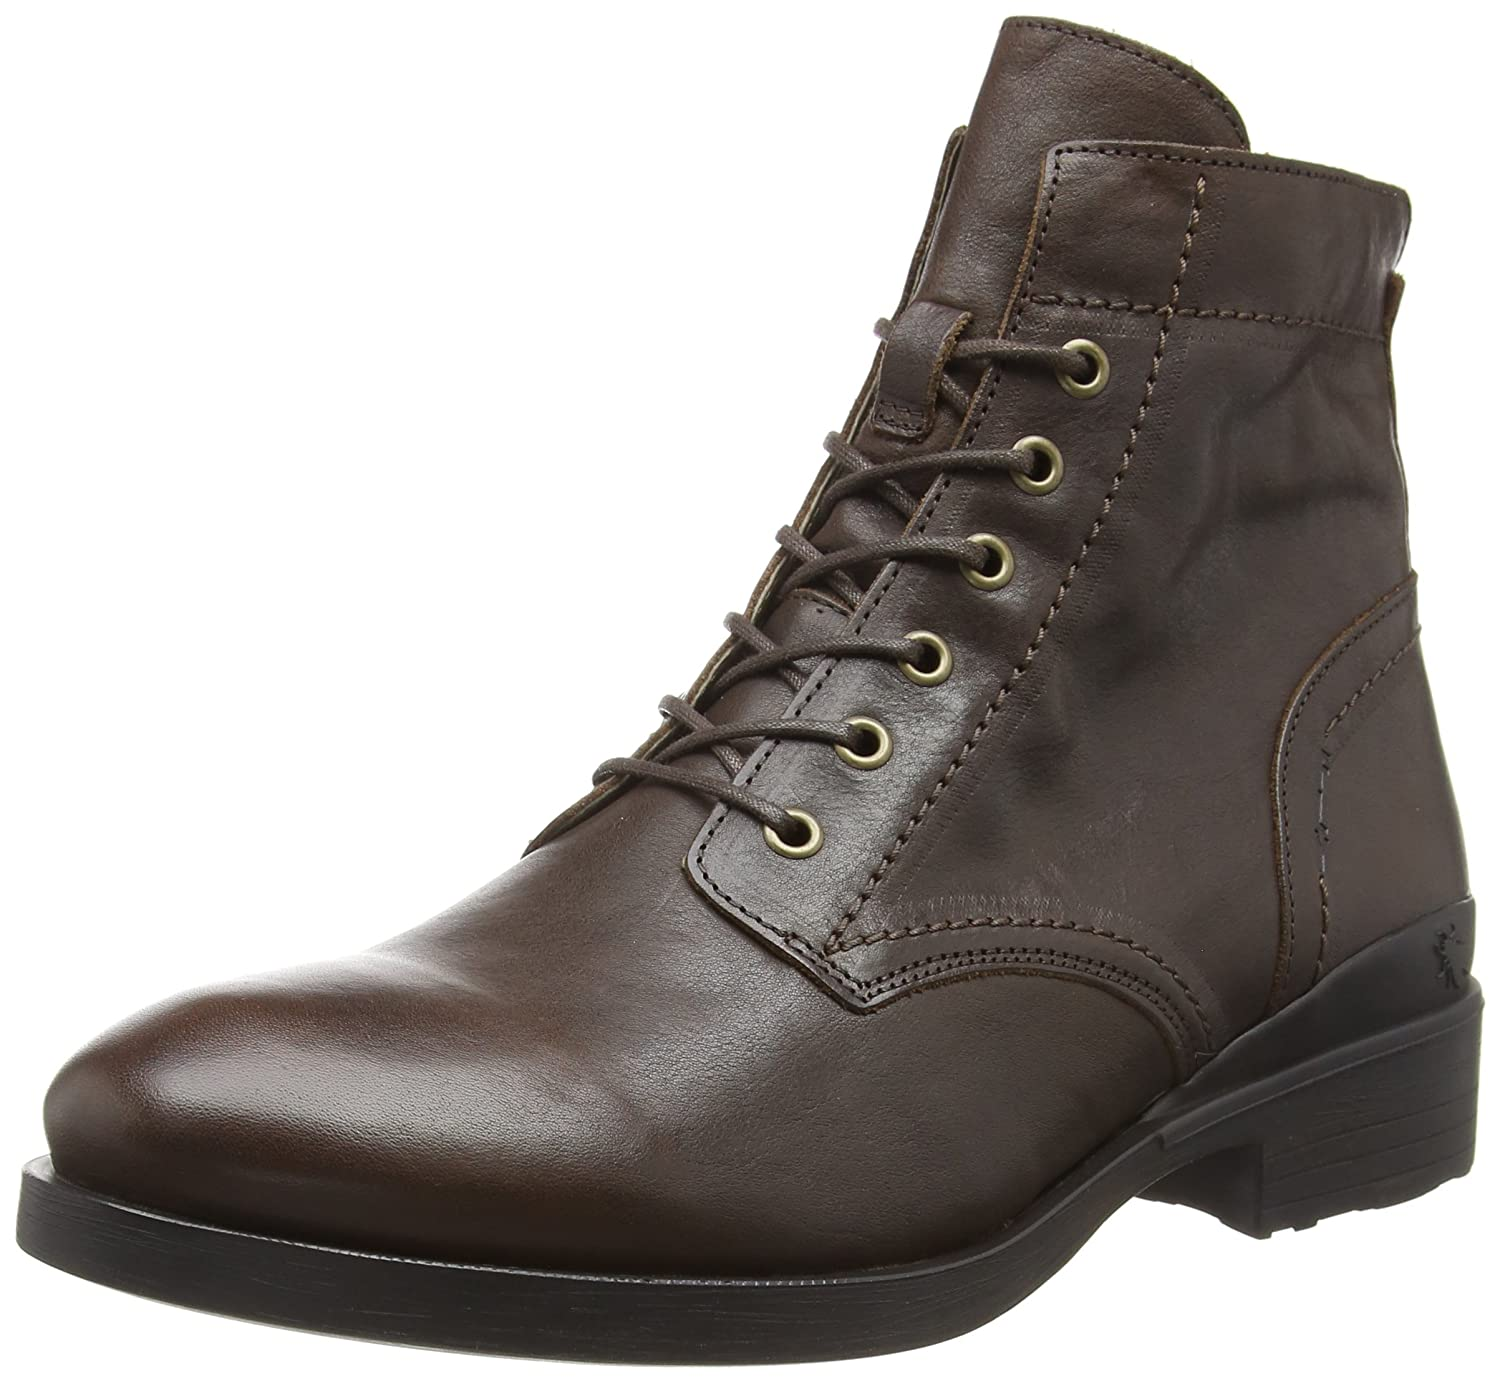 TALLA 40 EU. Fly London Marc343fly, Botas Clasicas para Hombre